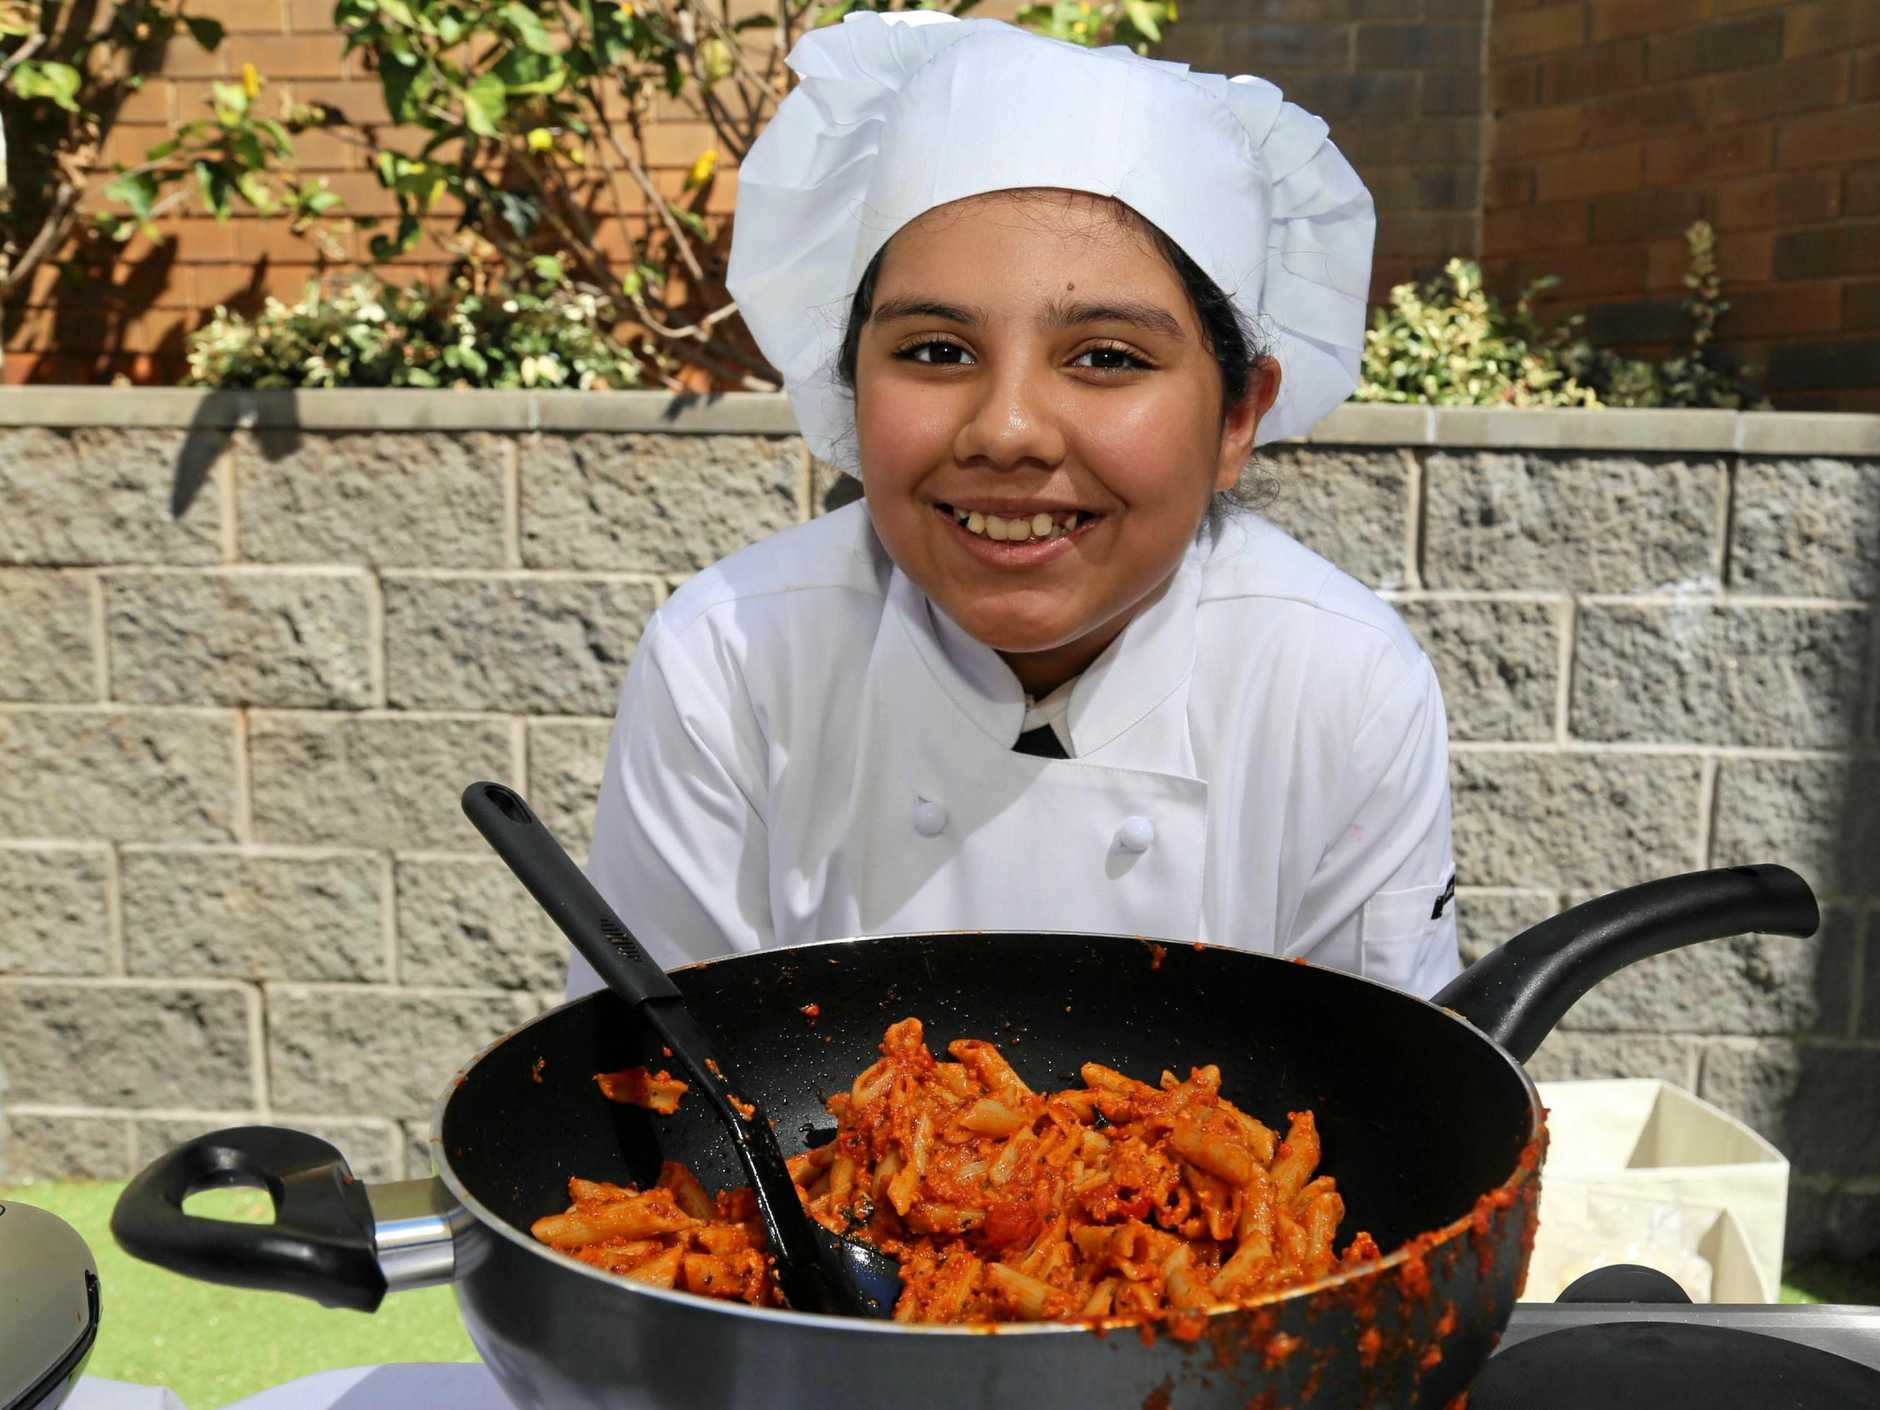 Radhapriya Bhardwaj teaches her fellow Year 6 Fairholme College students about cooking.